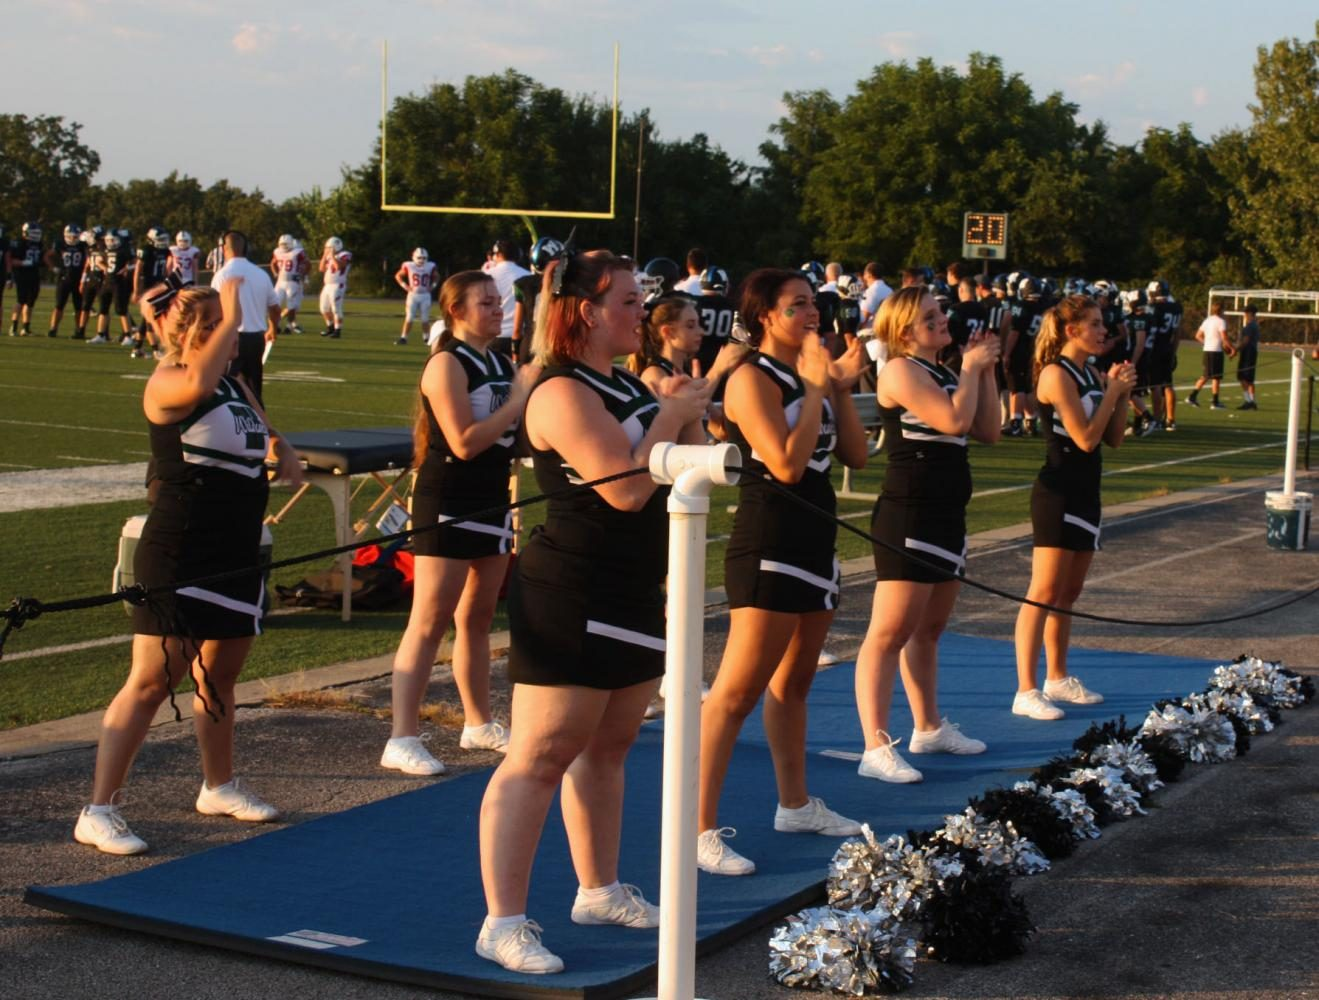 The+cheerleaders+rally+the+crowd+for+the+win+against+Clinton.+The+final+score+was+14-12.